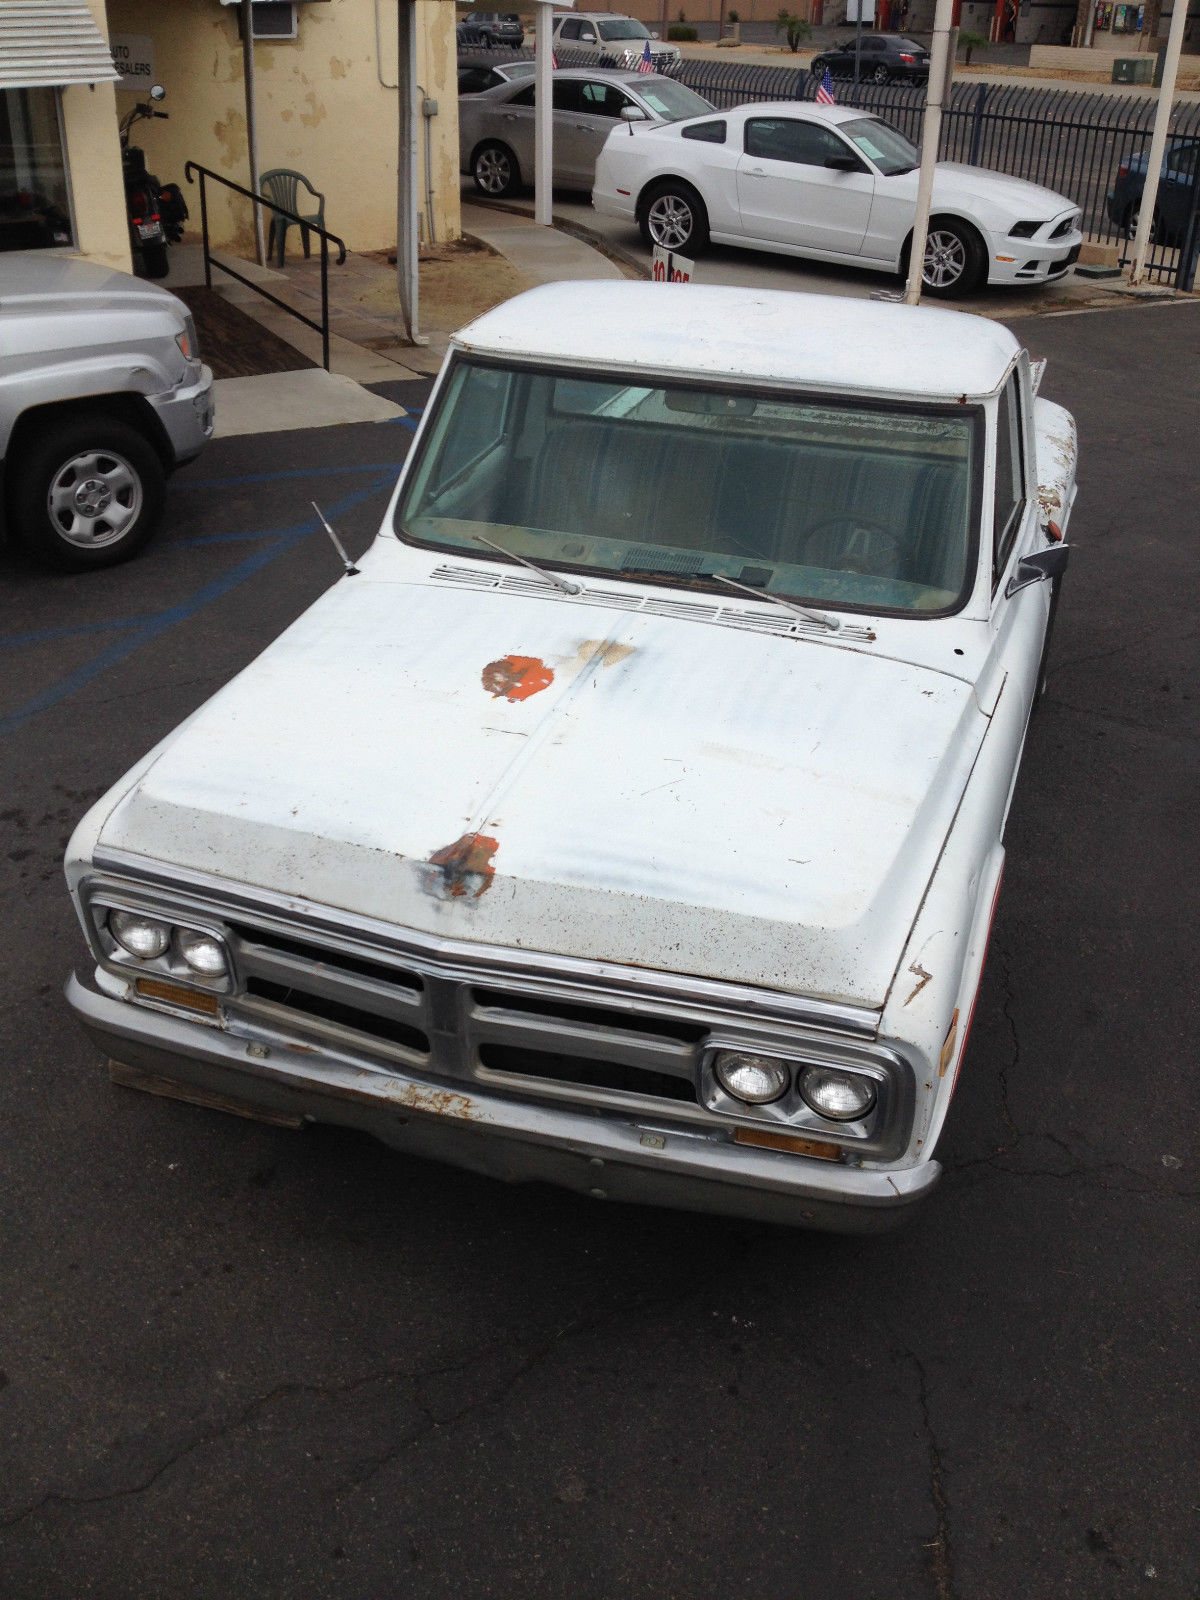 Cars For Sale Los Angeles >> 1969 GMC CHEVROLET SHORT BED PICKUP TRUCK C10 STEP SIDE ORIG. CALIFORNIA TRUCK - Classic ...